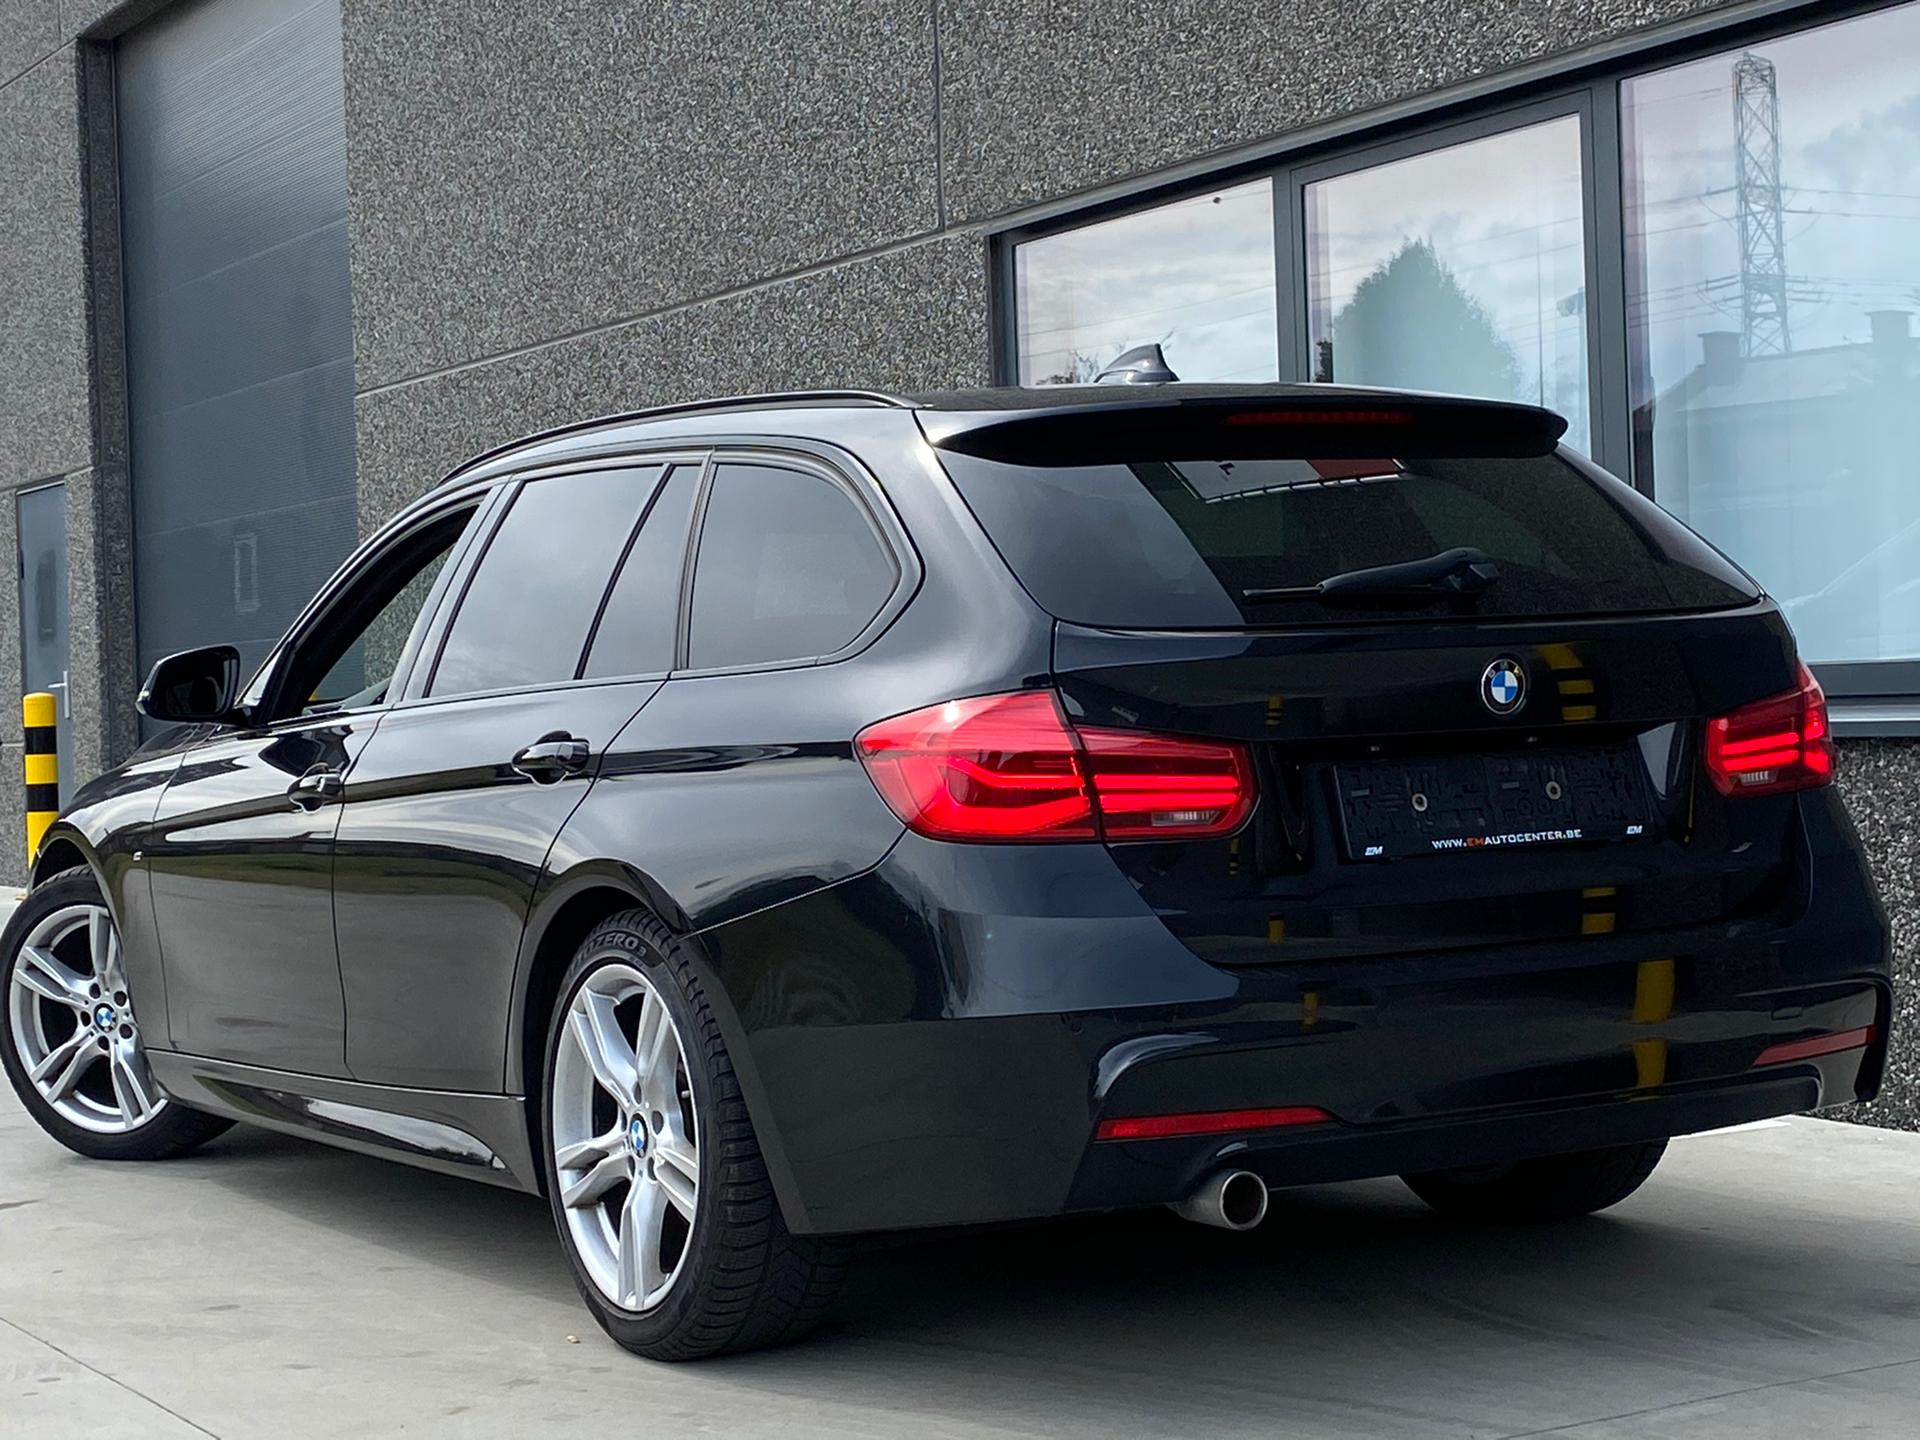 BMW 318 dA Facelift